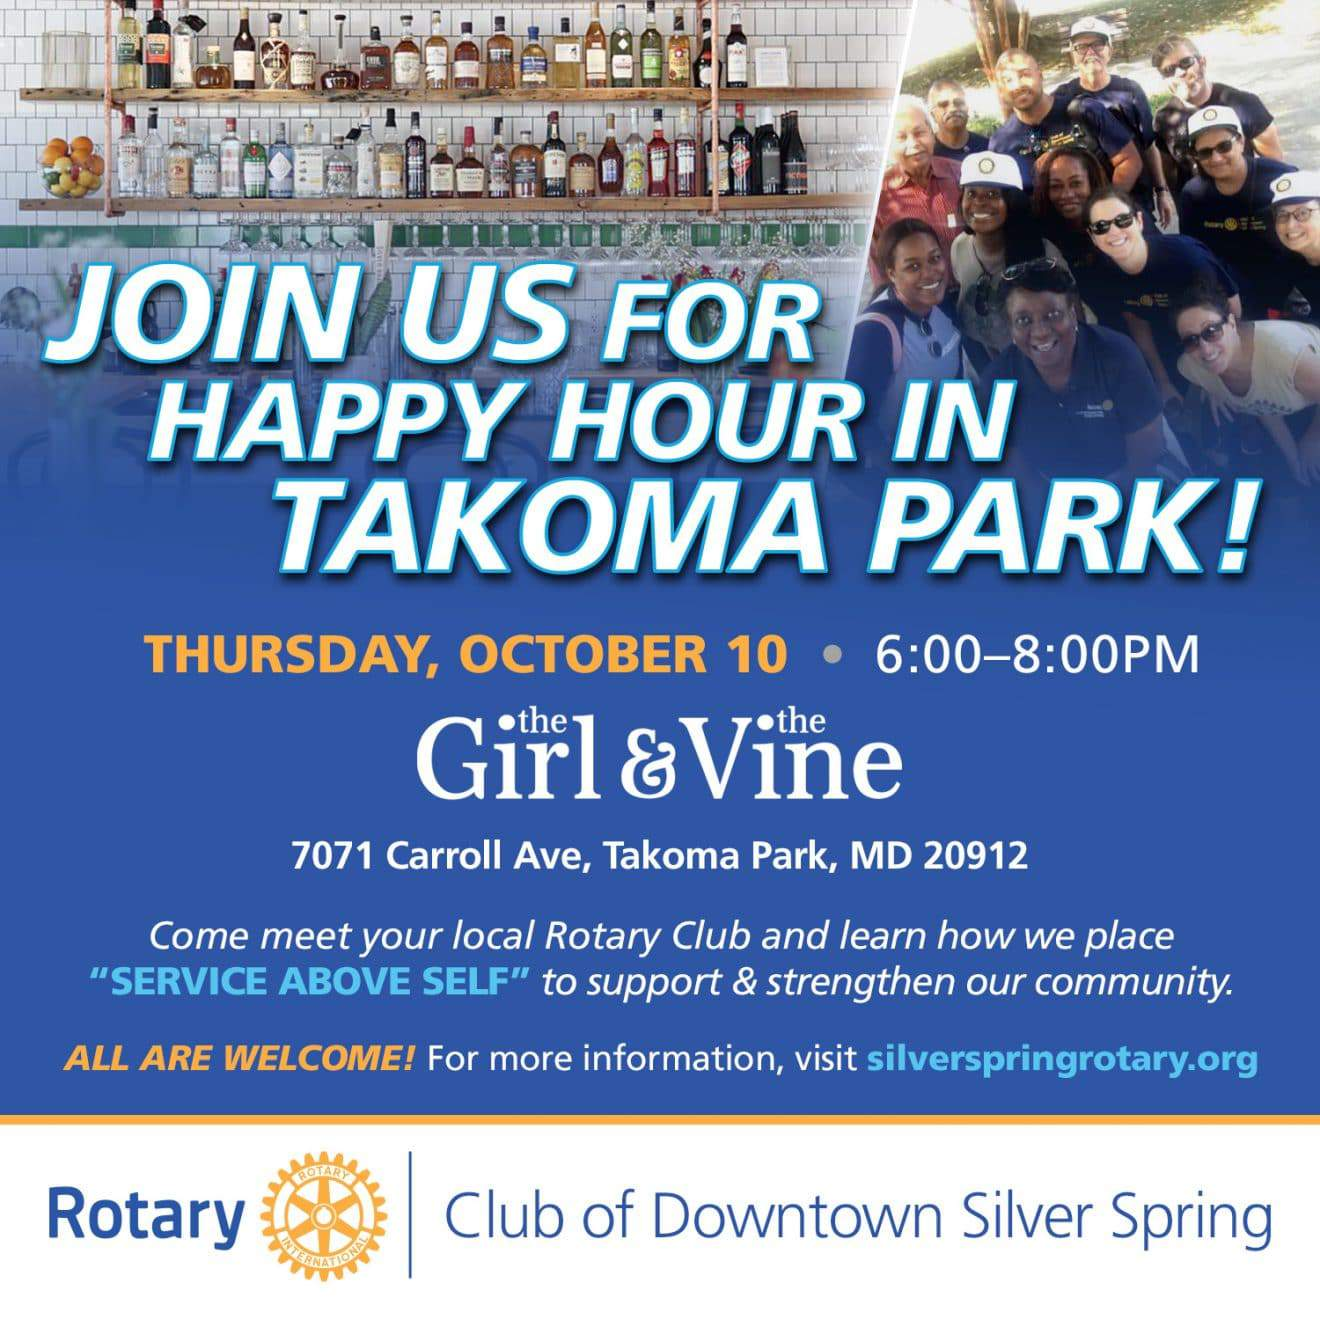 Happy Hour to Meet Your Local Rotary Club